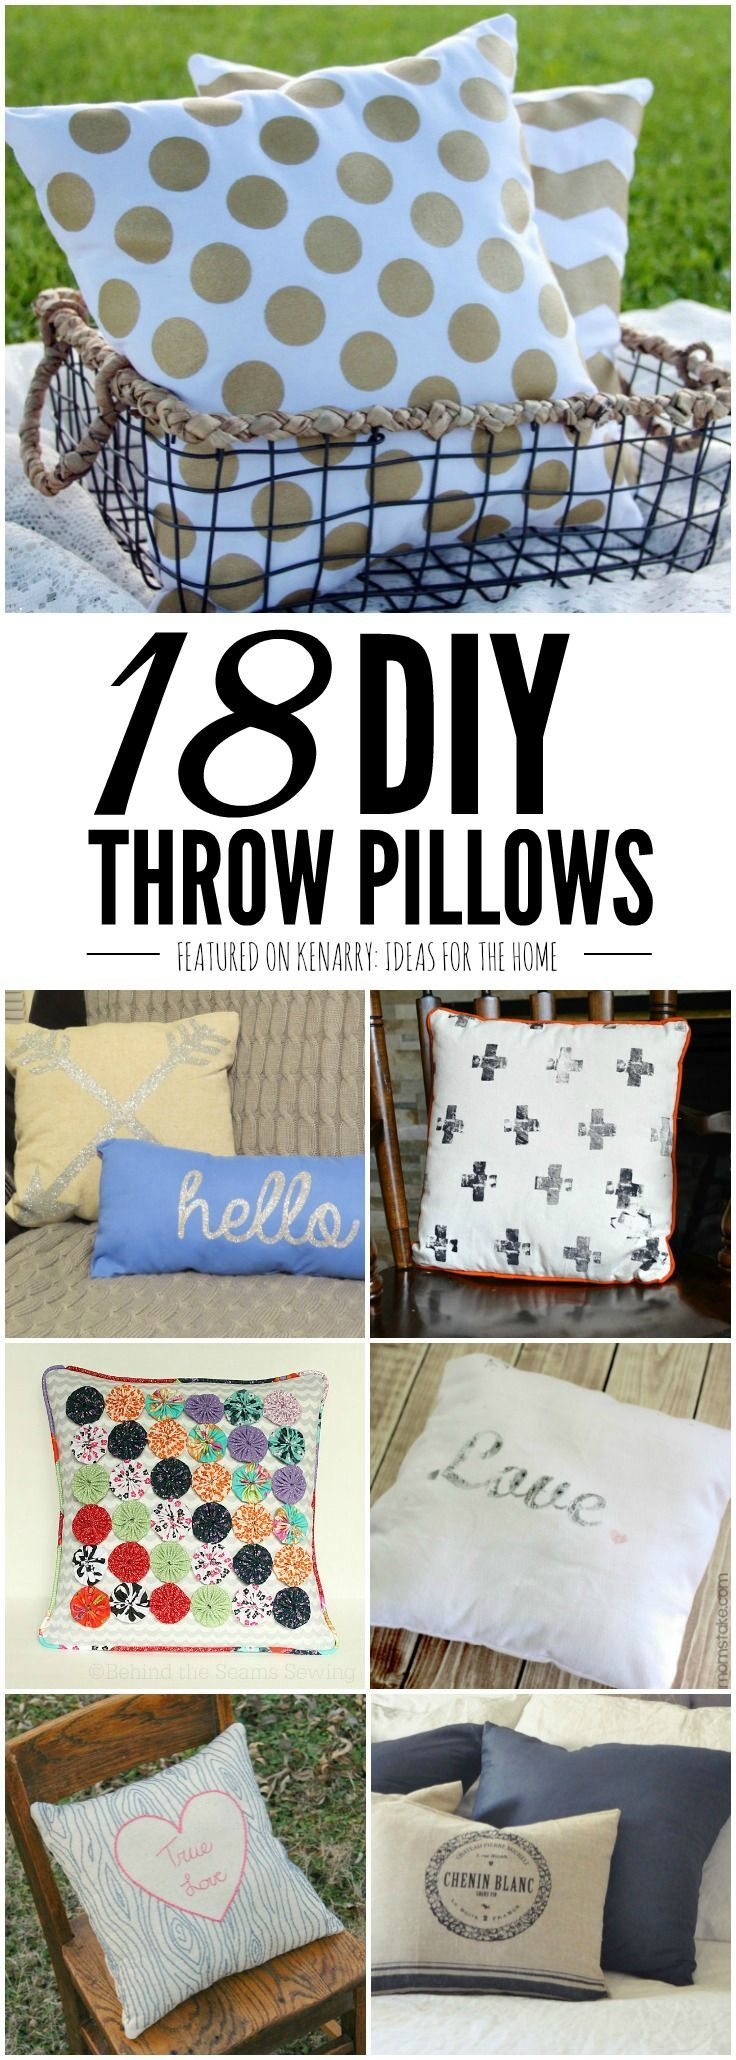 You'd be surprised how easy it is to make your own pillows with these 18 DIY Throw Pillow tutorials. Ideas include both no-sew and easy sewing ideas that anyone can do to make their home beautiful. Throw pillows add style, comfort and texture to any room